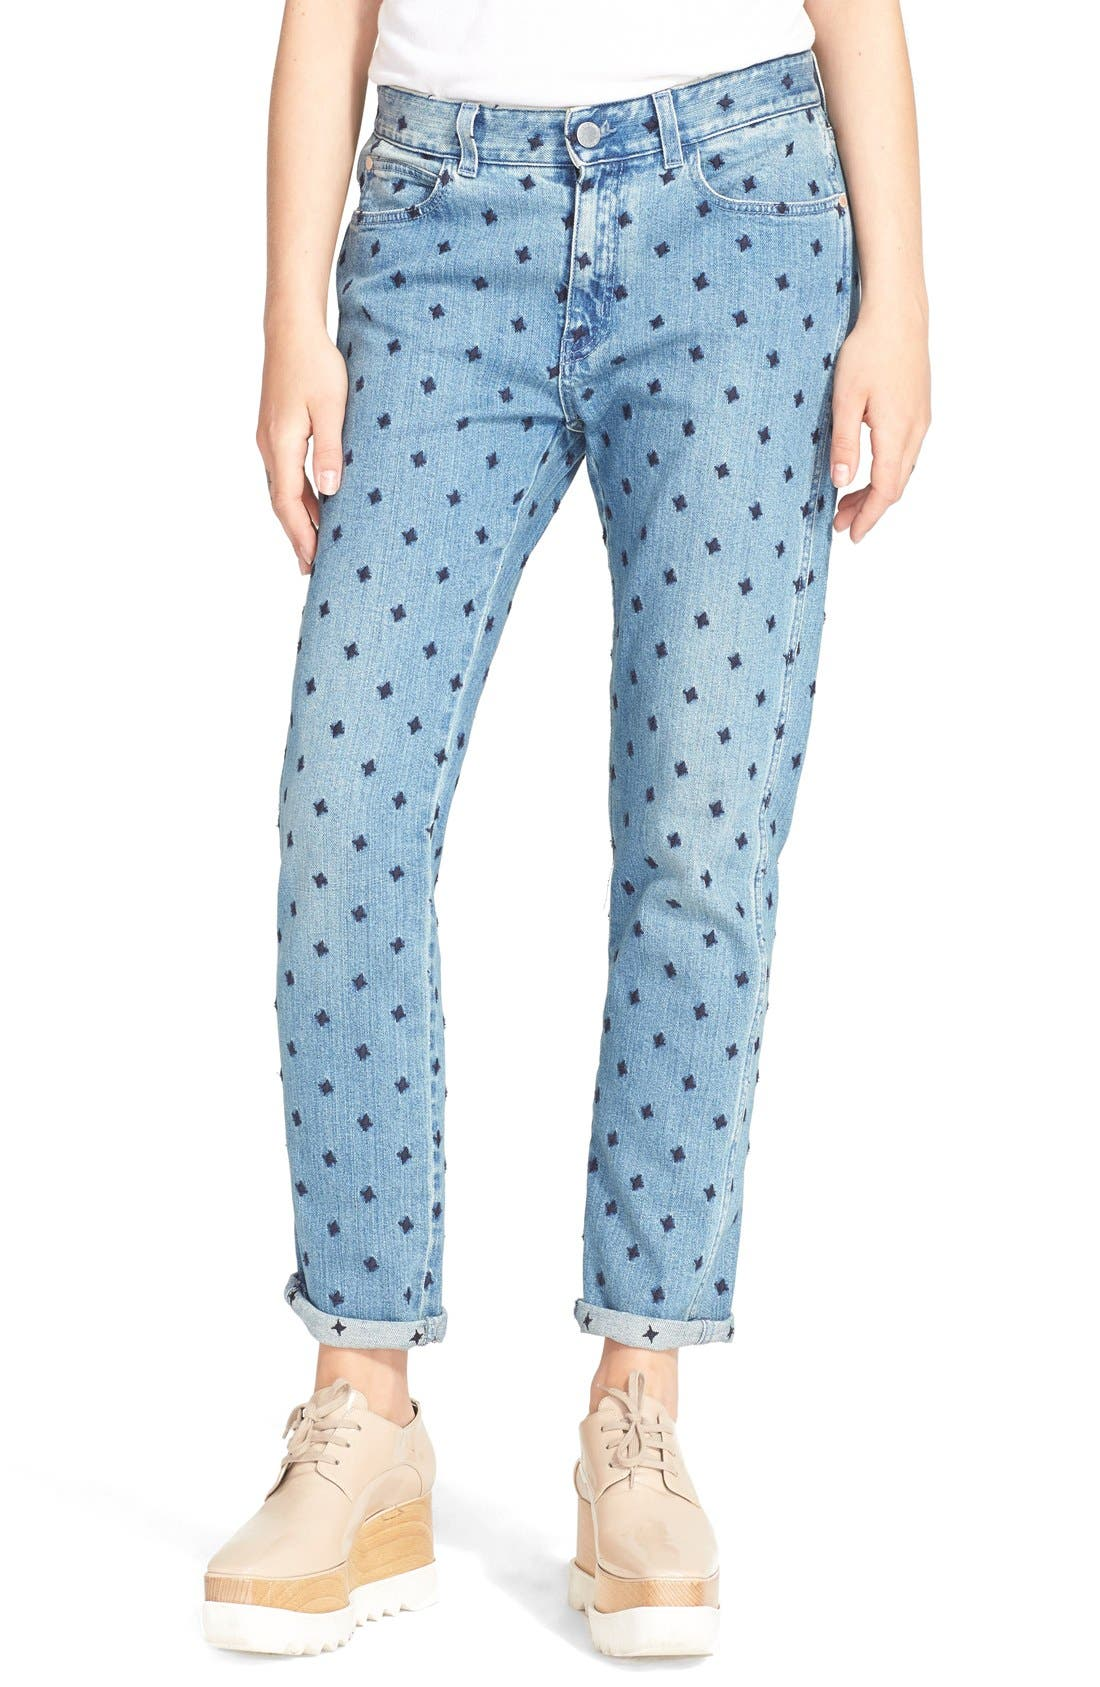 Alternate Image 1 Selected - Stella McCartney 'The Skinny' Star Embroidered Boyfriend Jeans (Classic Blue)